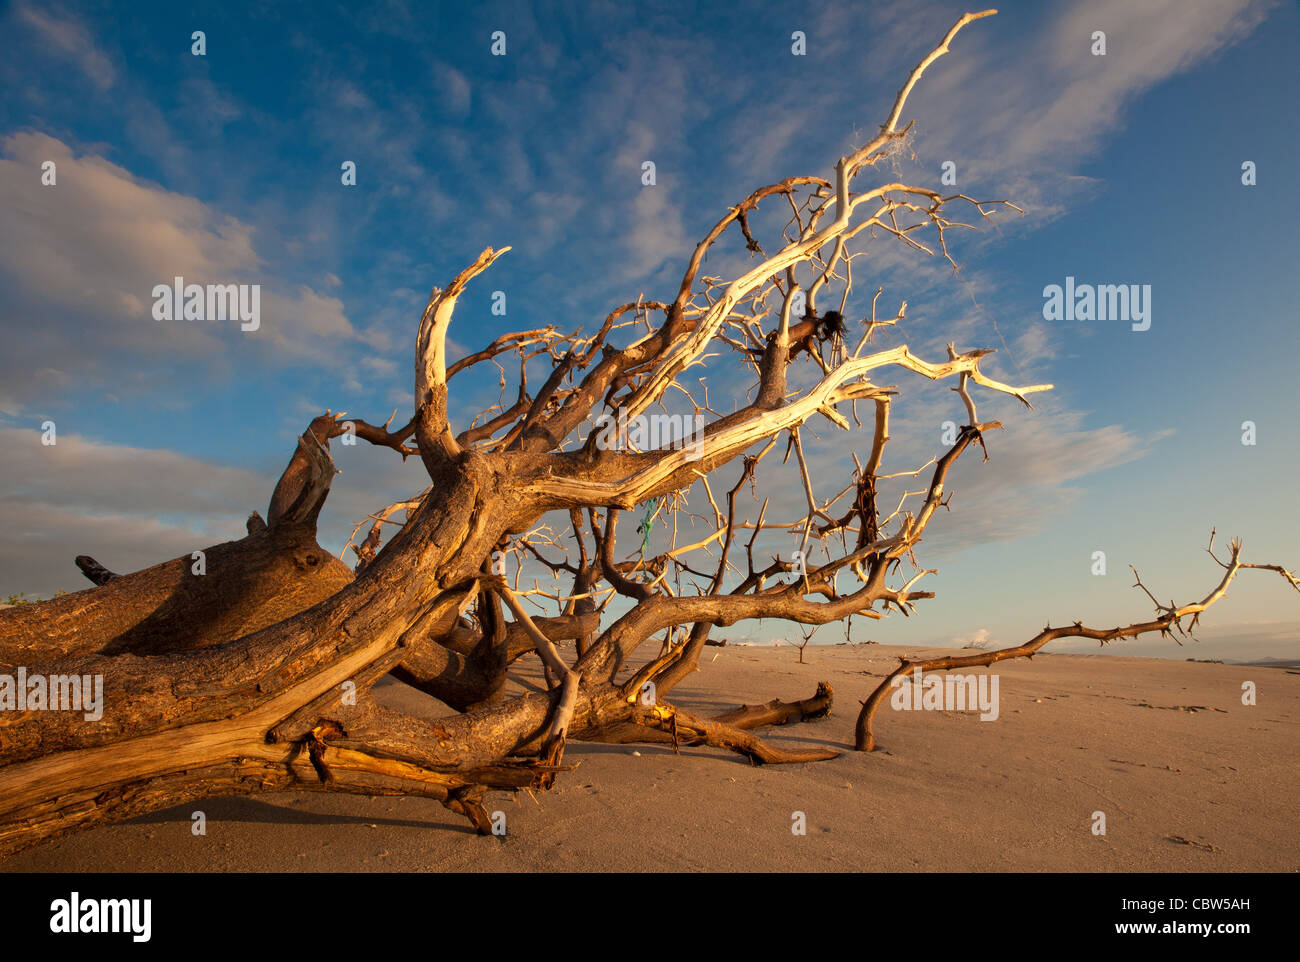 Stranded tree on the beach at Punta Chame, Pacific coast, Panama province, Republic of Panama. - Stock Image